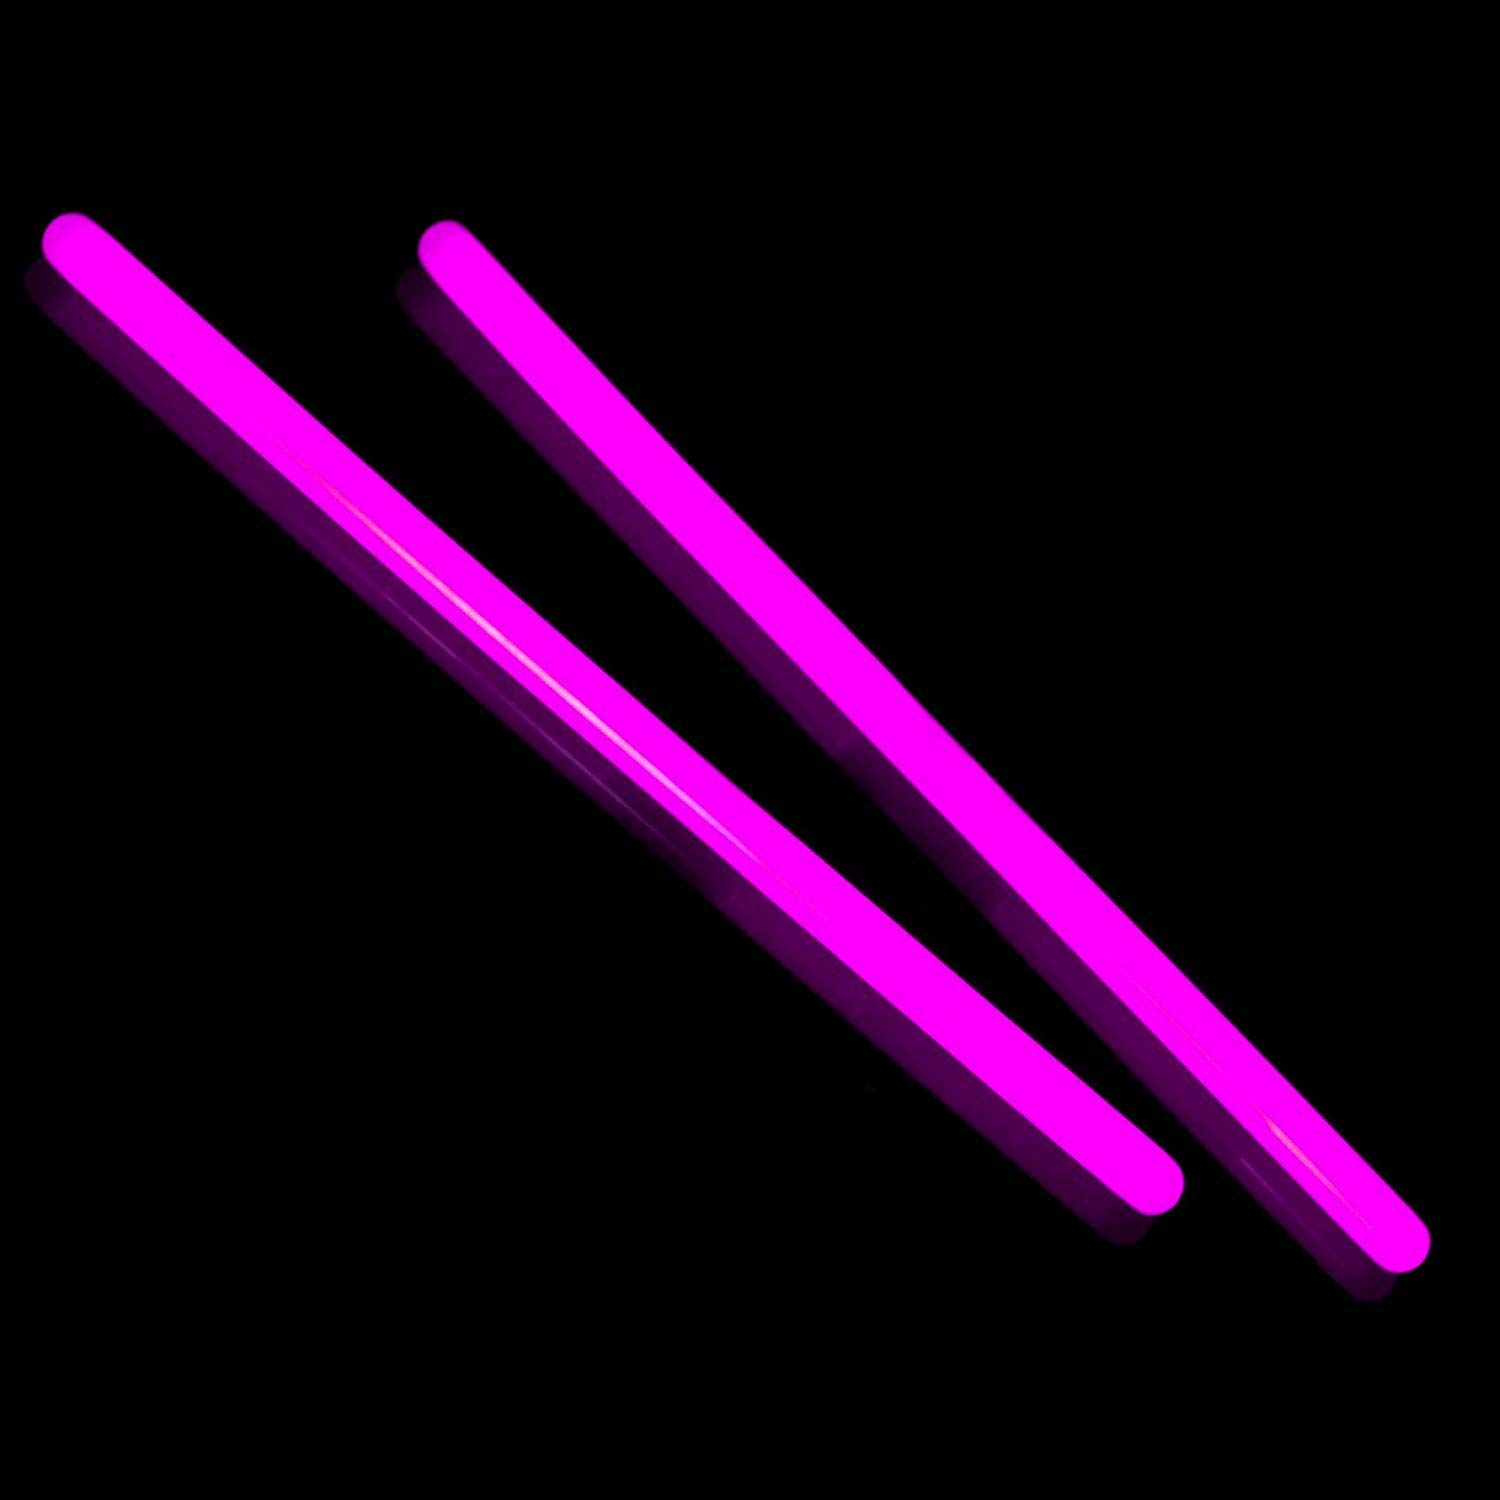 Fun Central E9 10 Inch Glow in the Dark Sticks - Pink